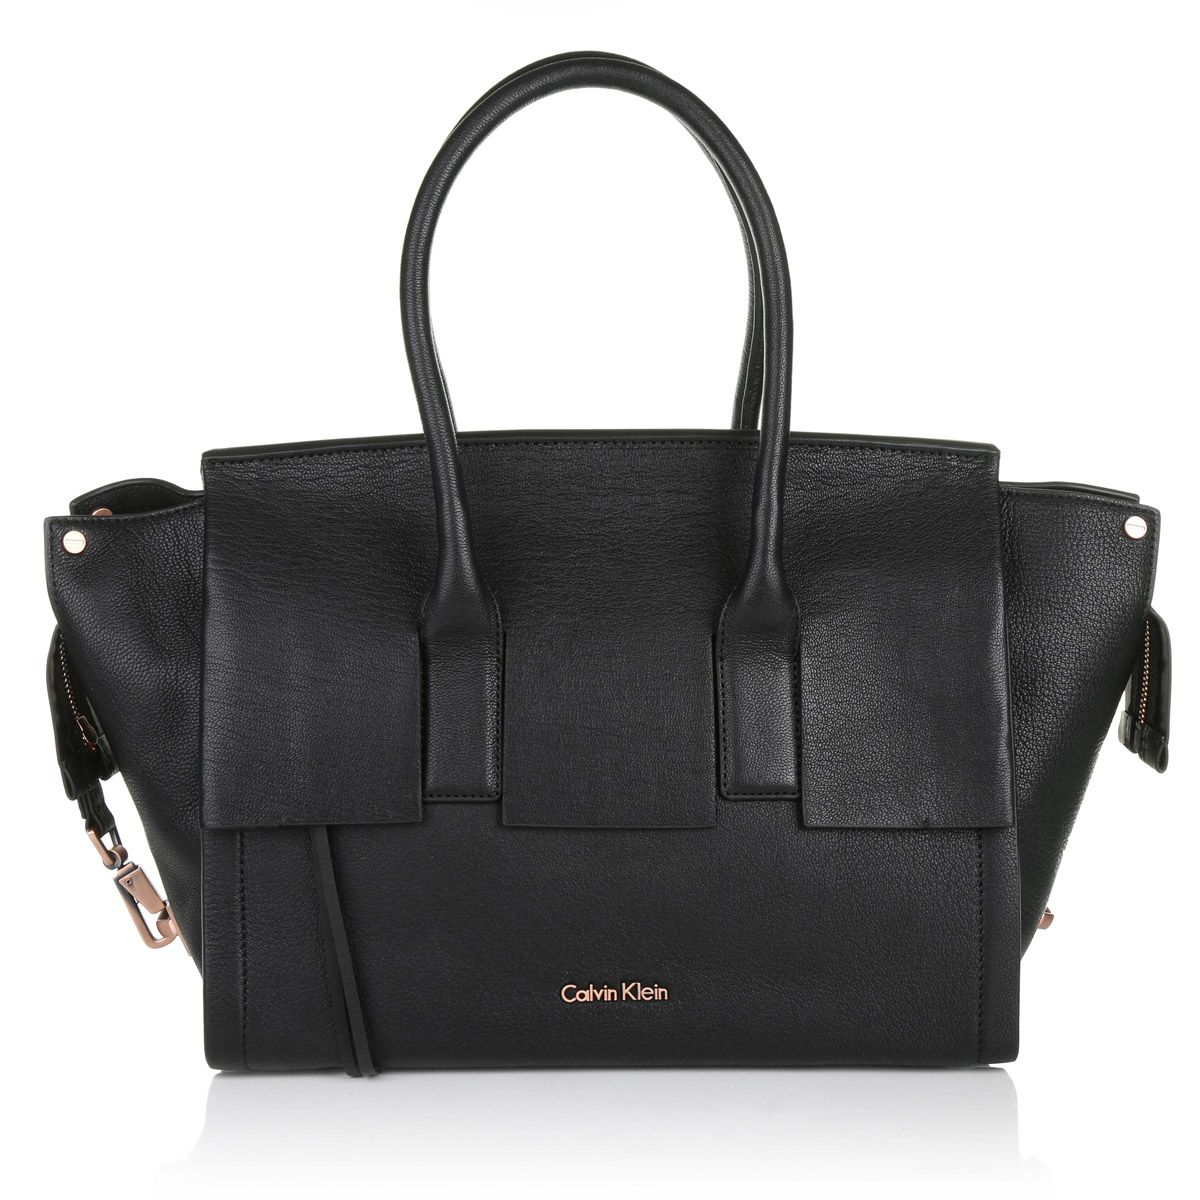 The Calvin Klein 'Cara Bag' is very special: the